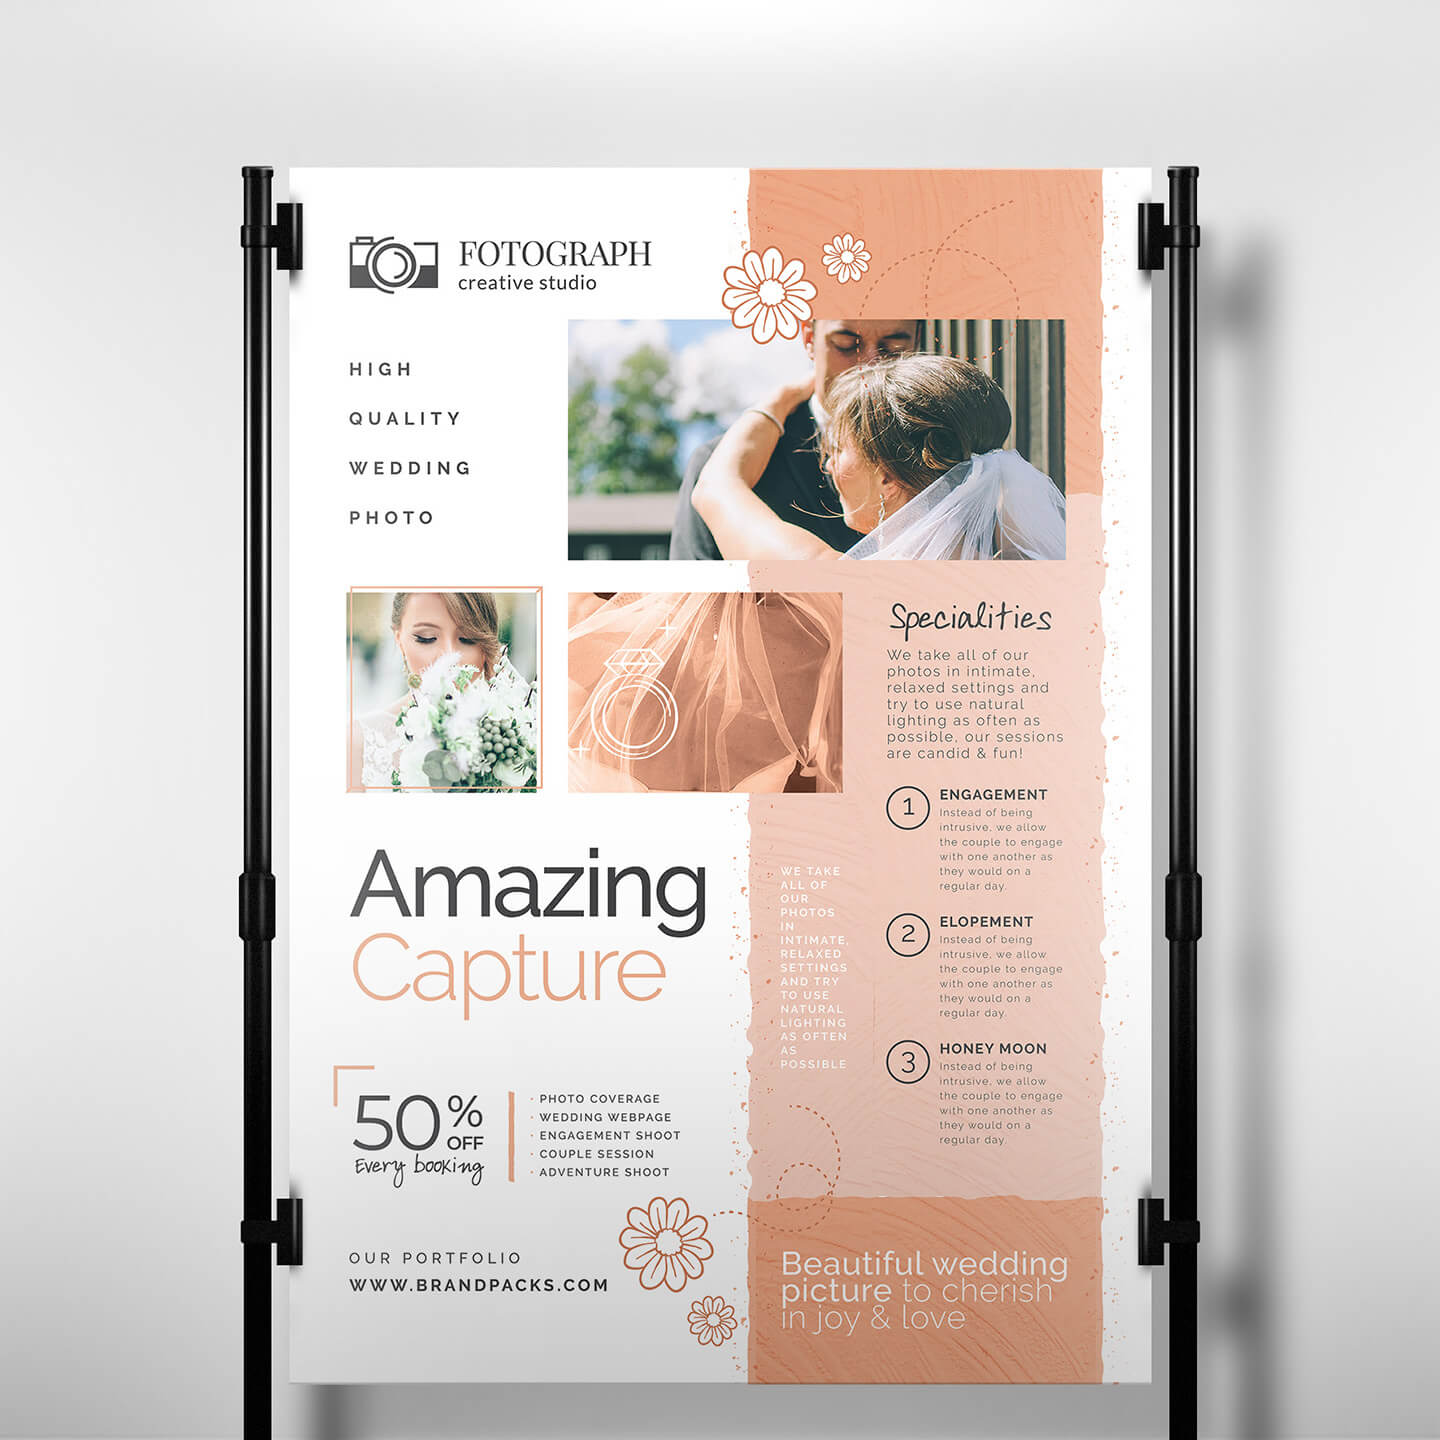 Photography Service Banner Template - Psd, Ai & Vector Intended For Photography Banner Template